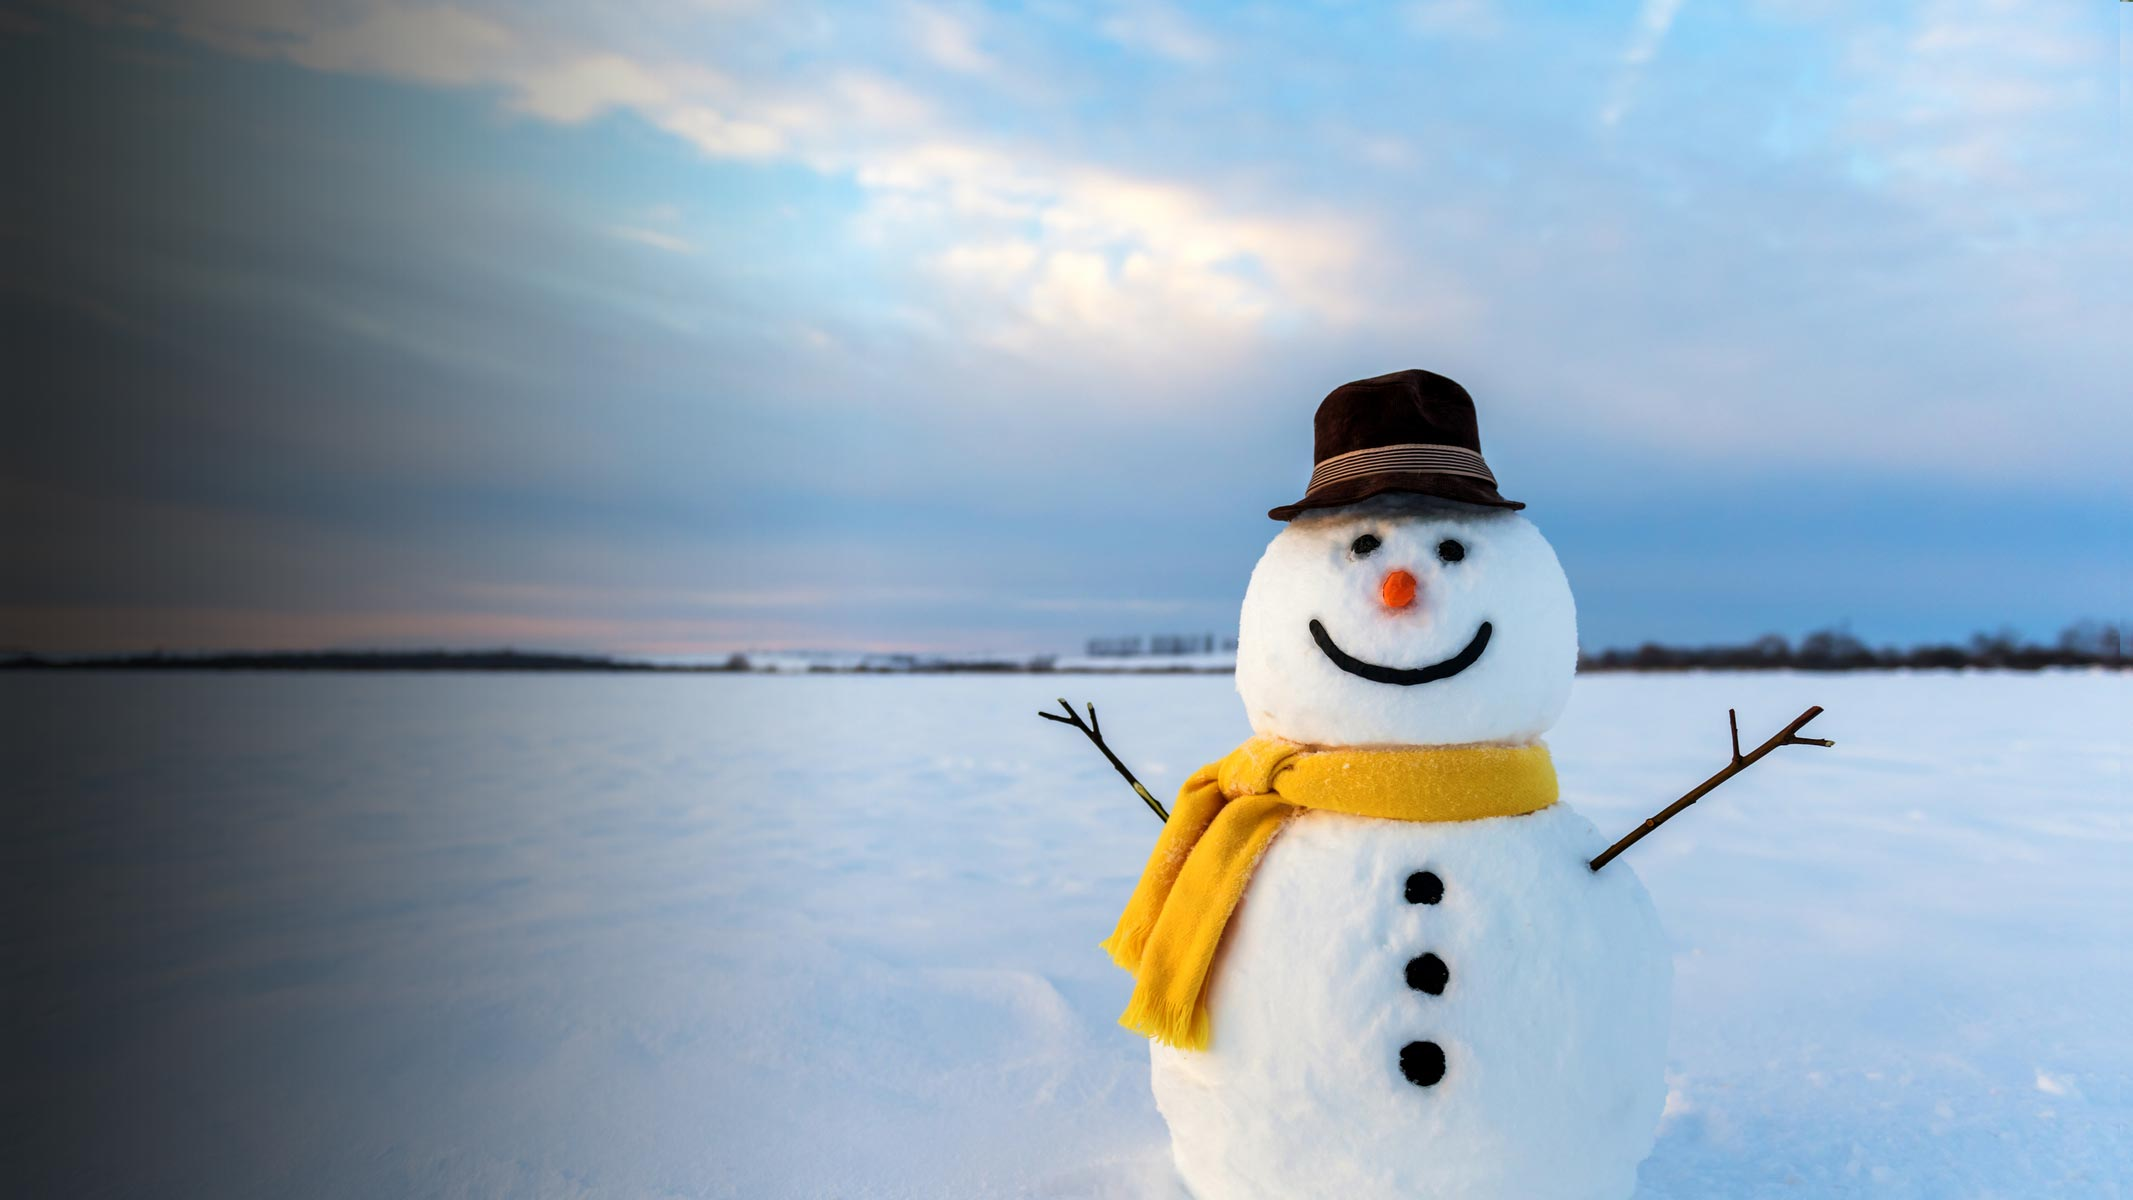 Picture of snowman with a scark and hat on